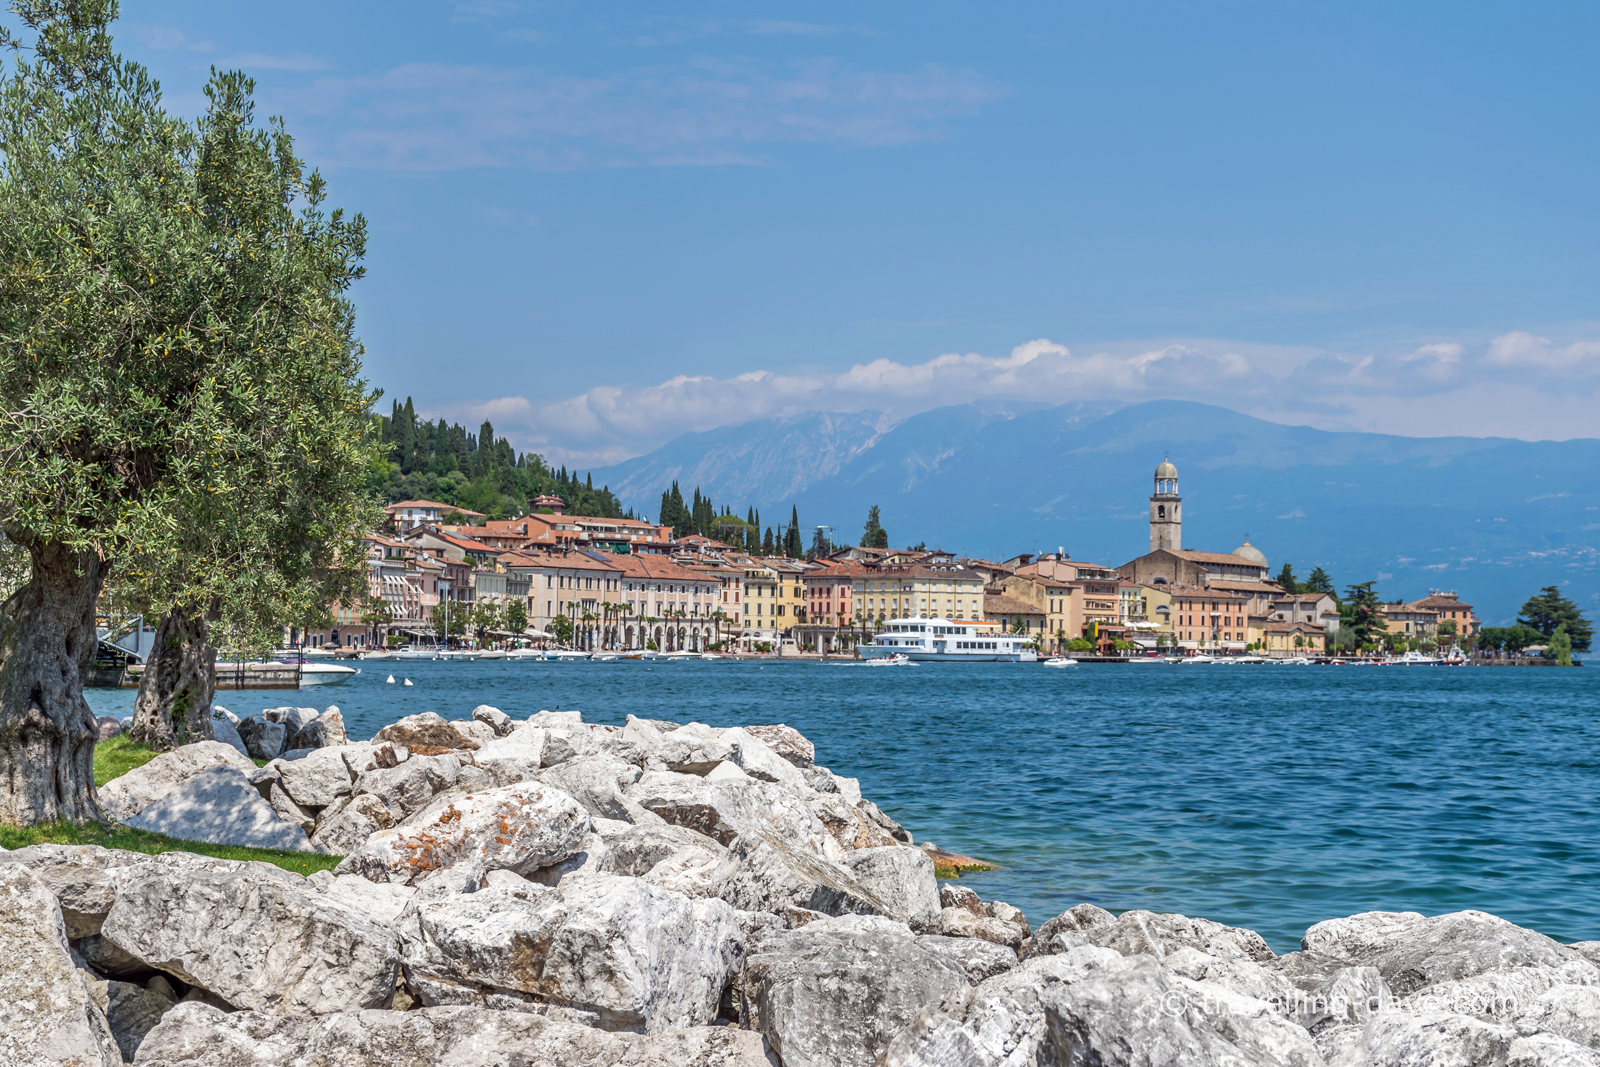 Panoramic view of Salo' in Italy